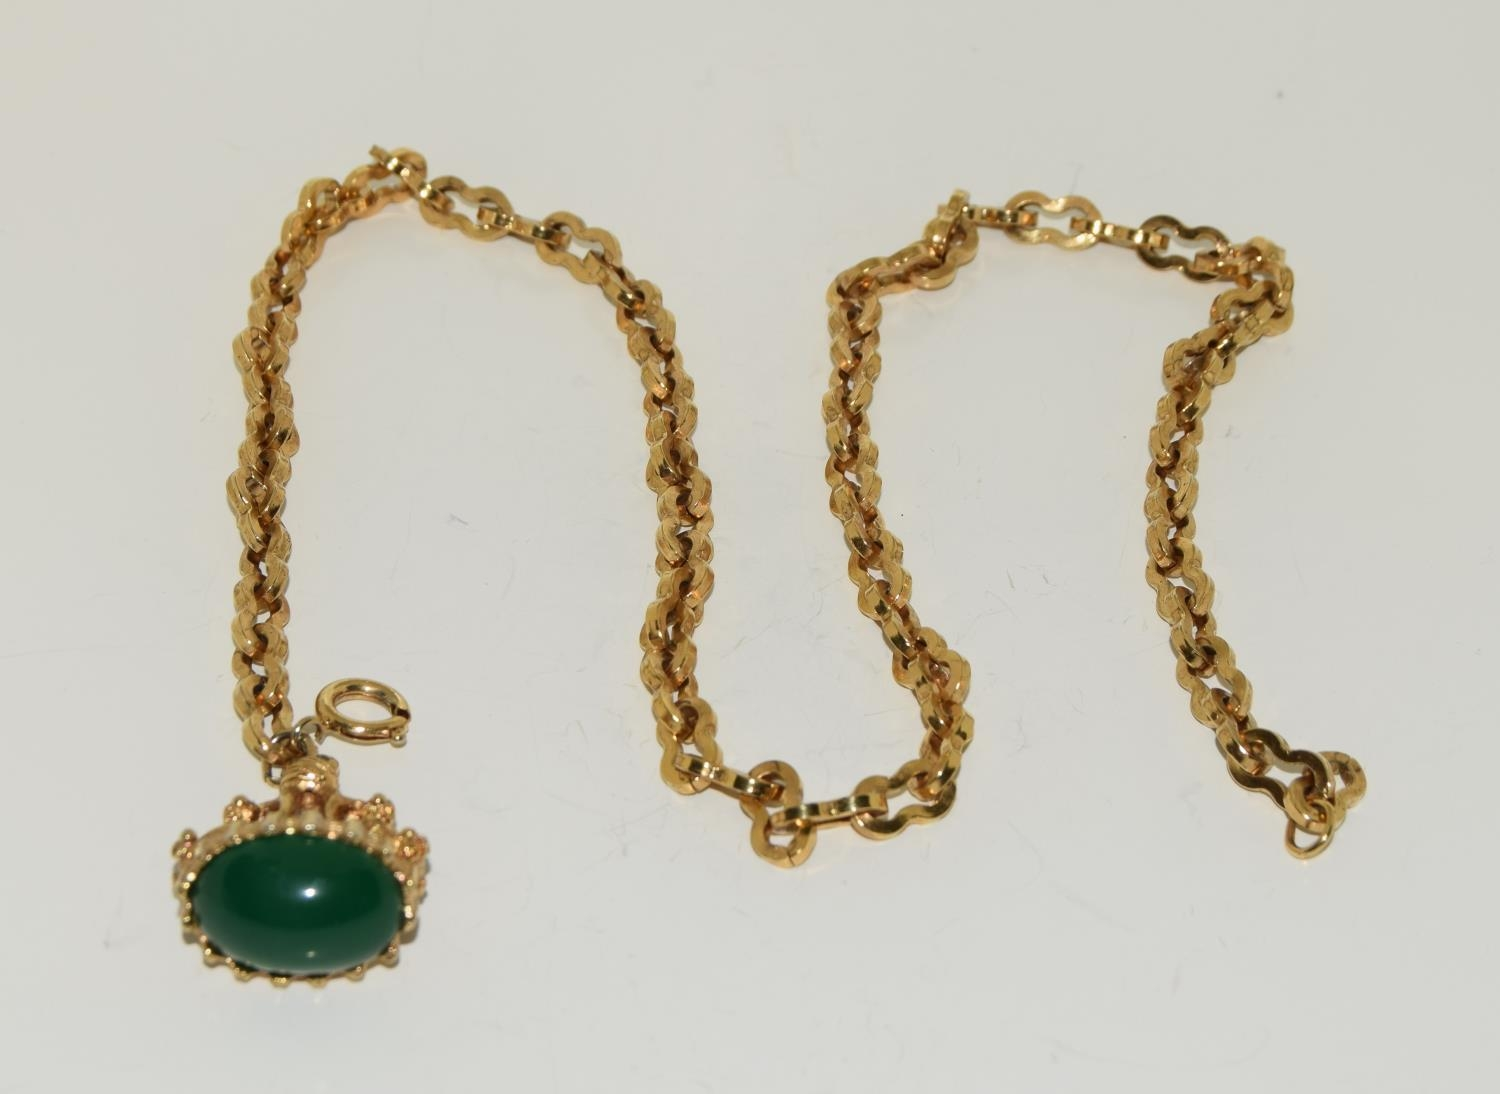 Gilded watch chain and fob set with a cabochon jade stone